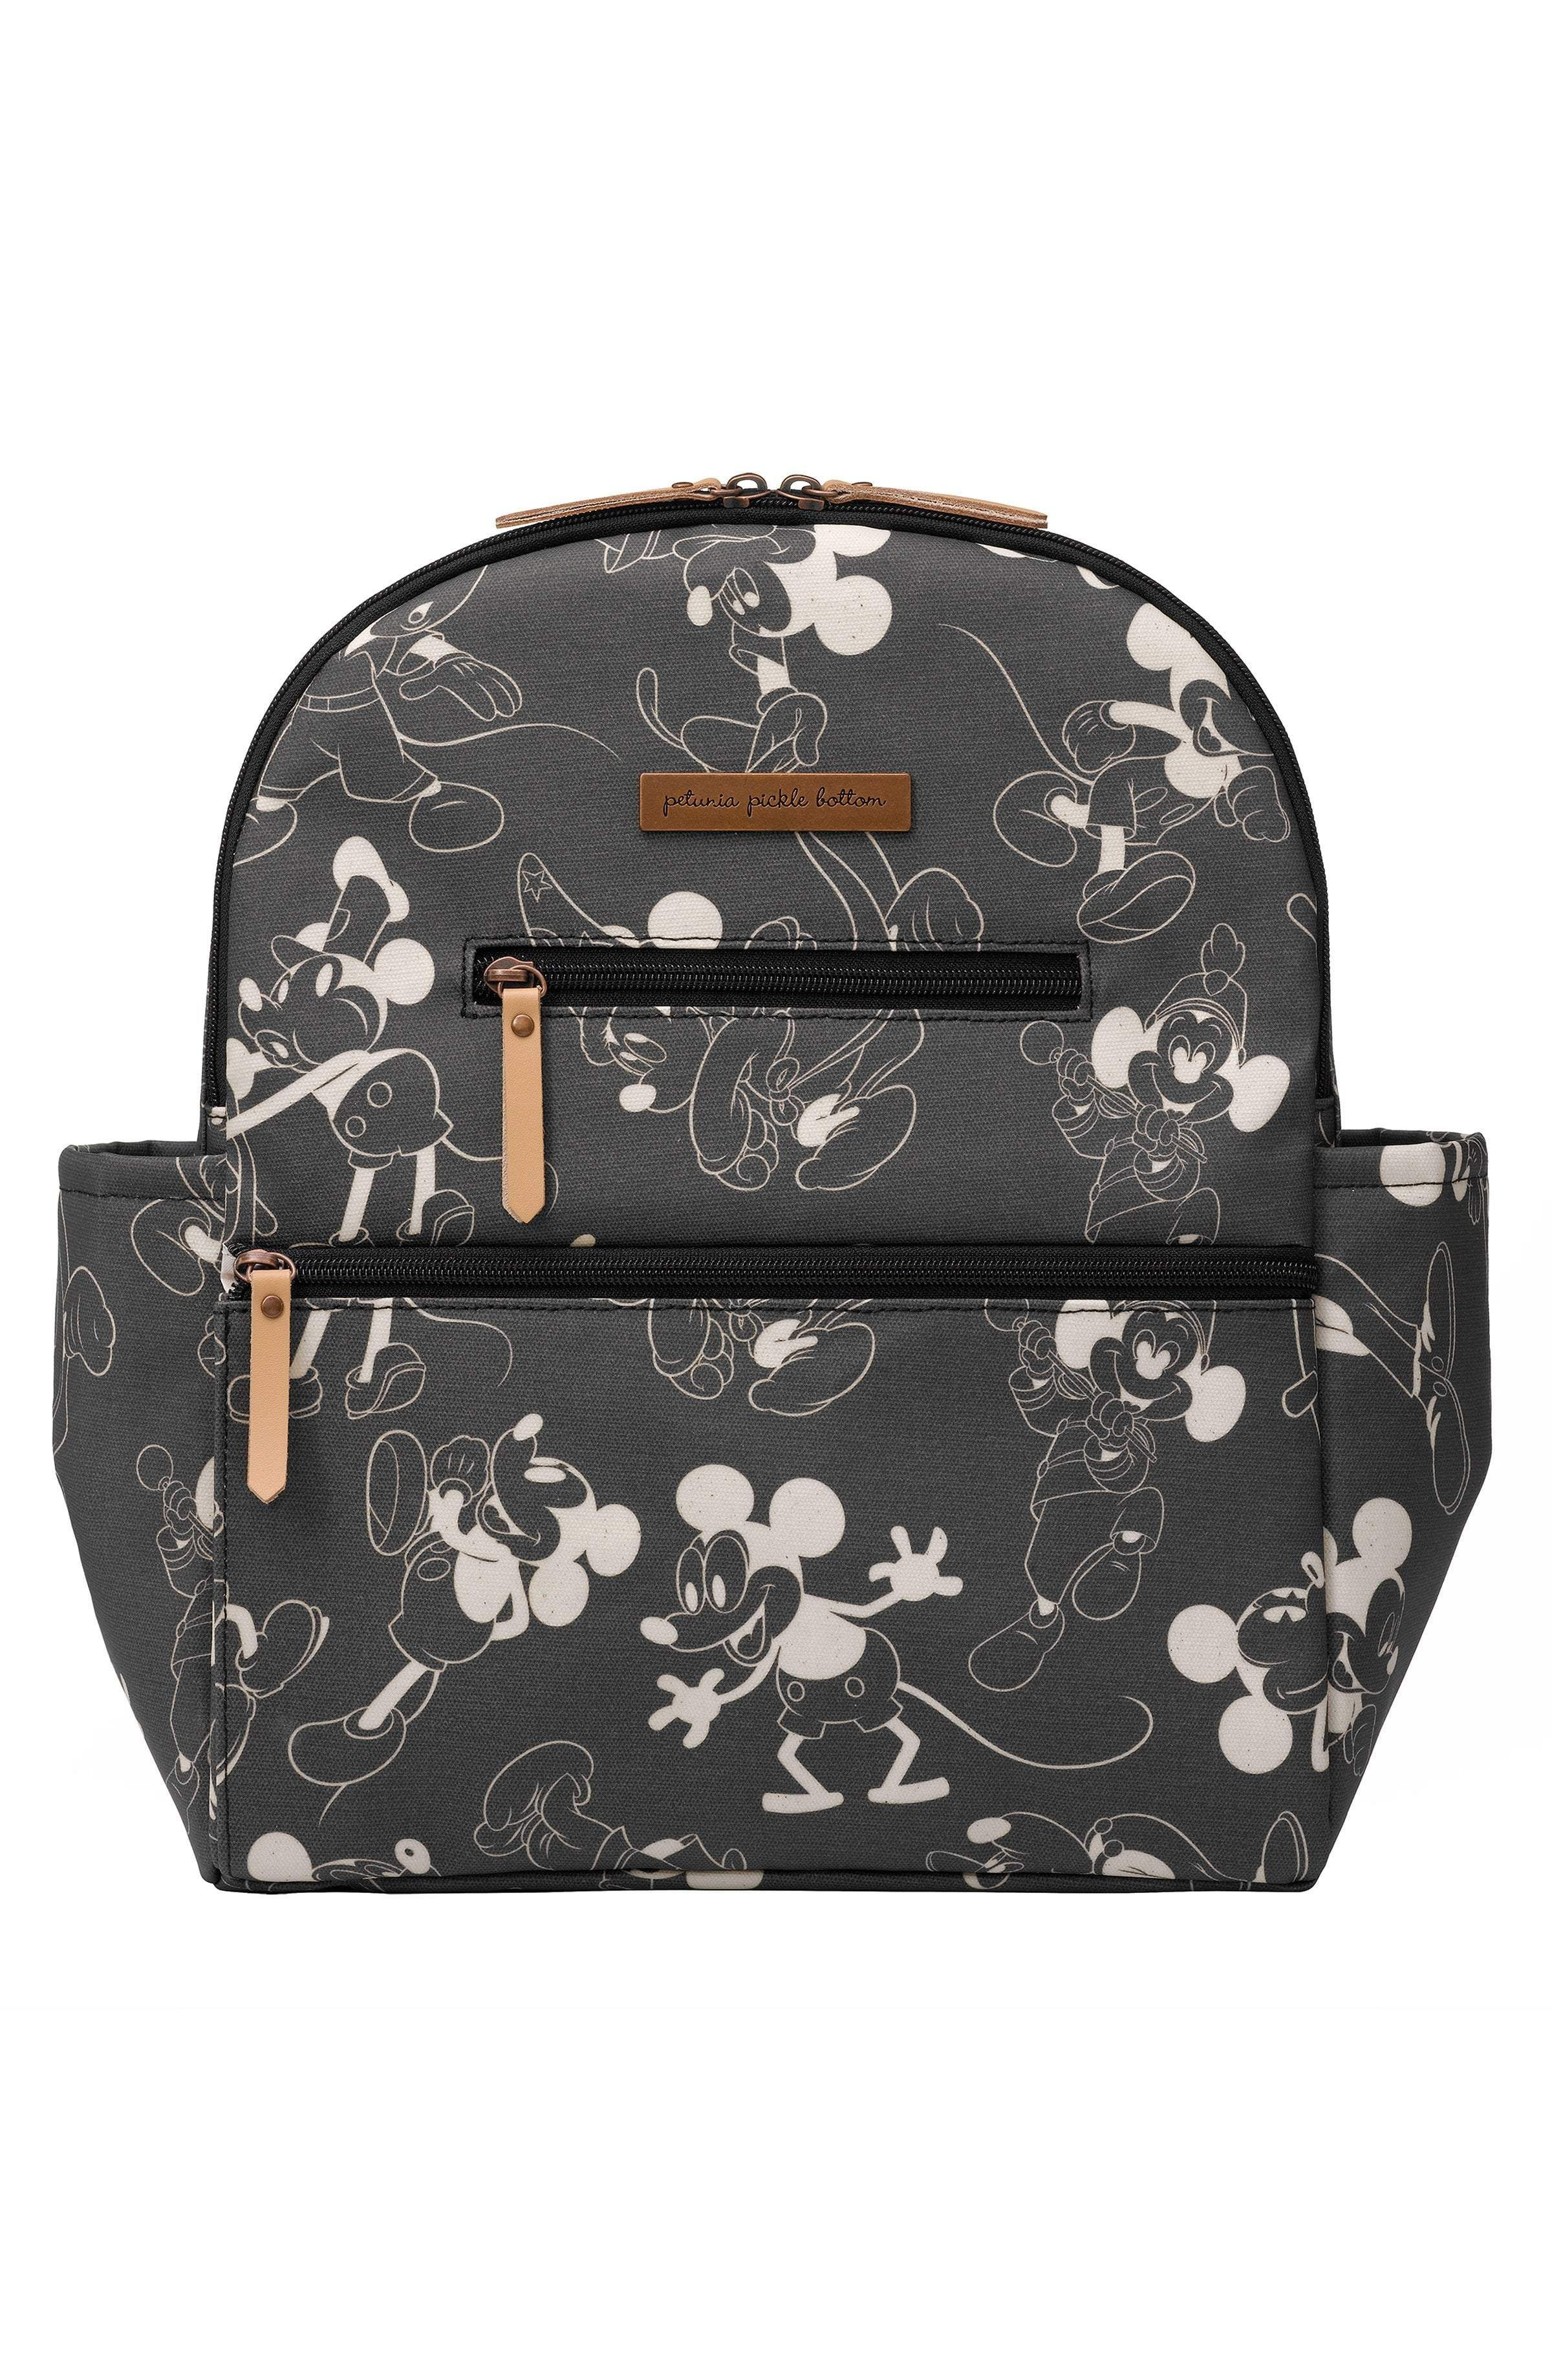 34a770b23ab170 PREORDER - Petunia Pickle Bottom Ace Backpack in Mickey s 90th in ...